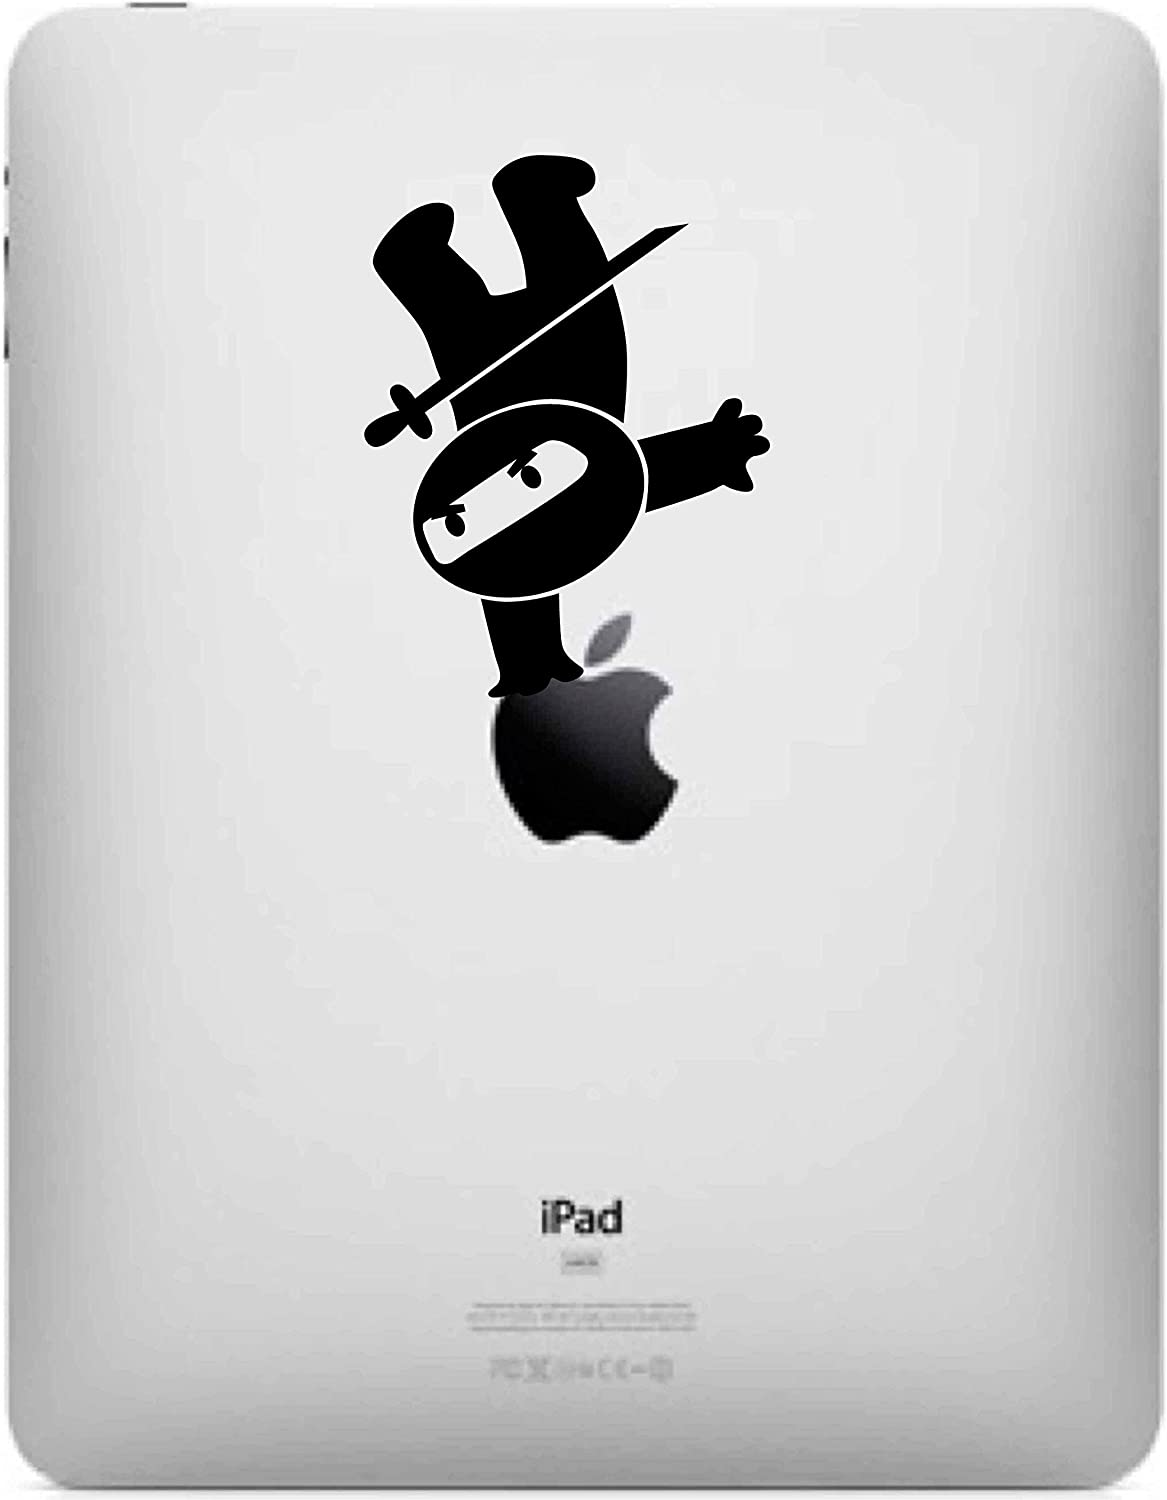 Ninja Ipad Decal Ipad Sticker Tablet Decal Apple Skin Ipad Air Decal